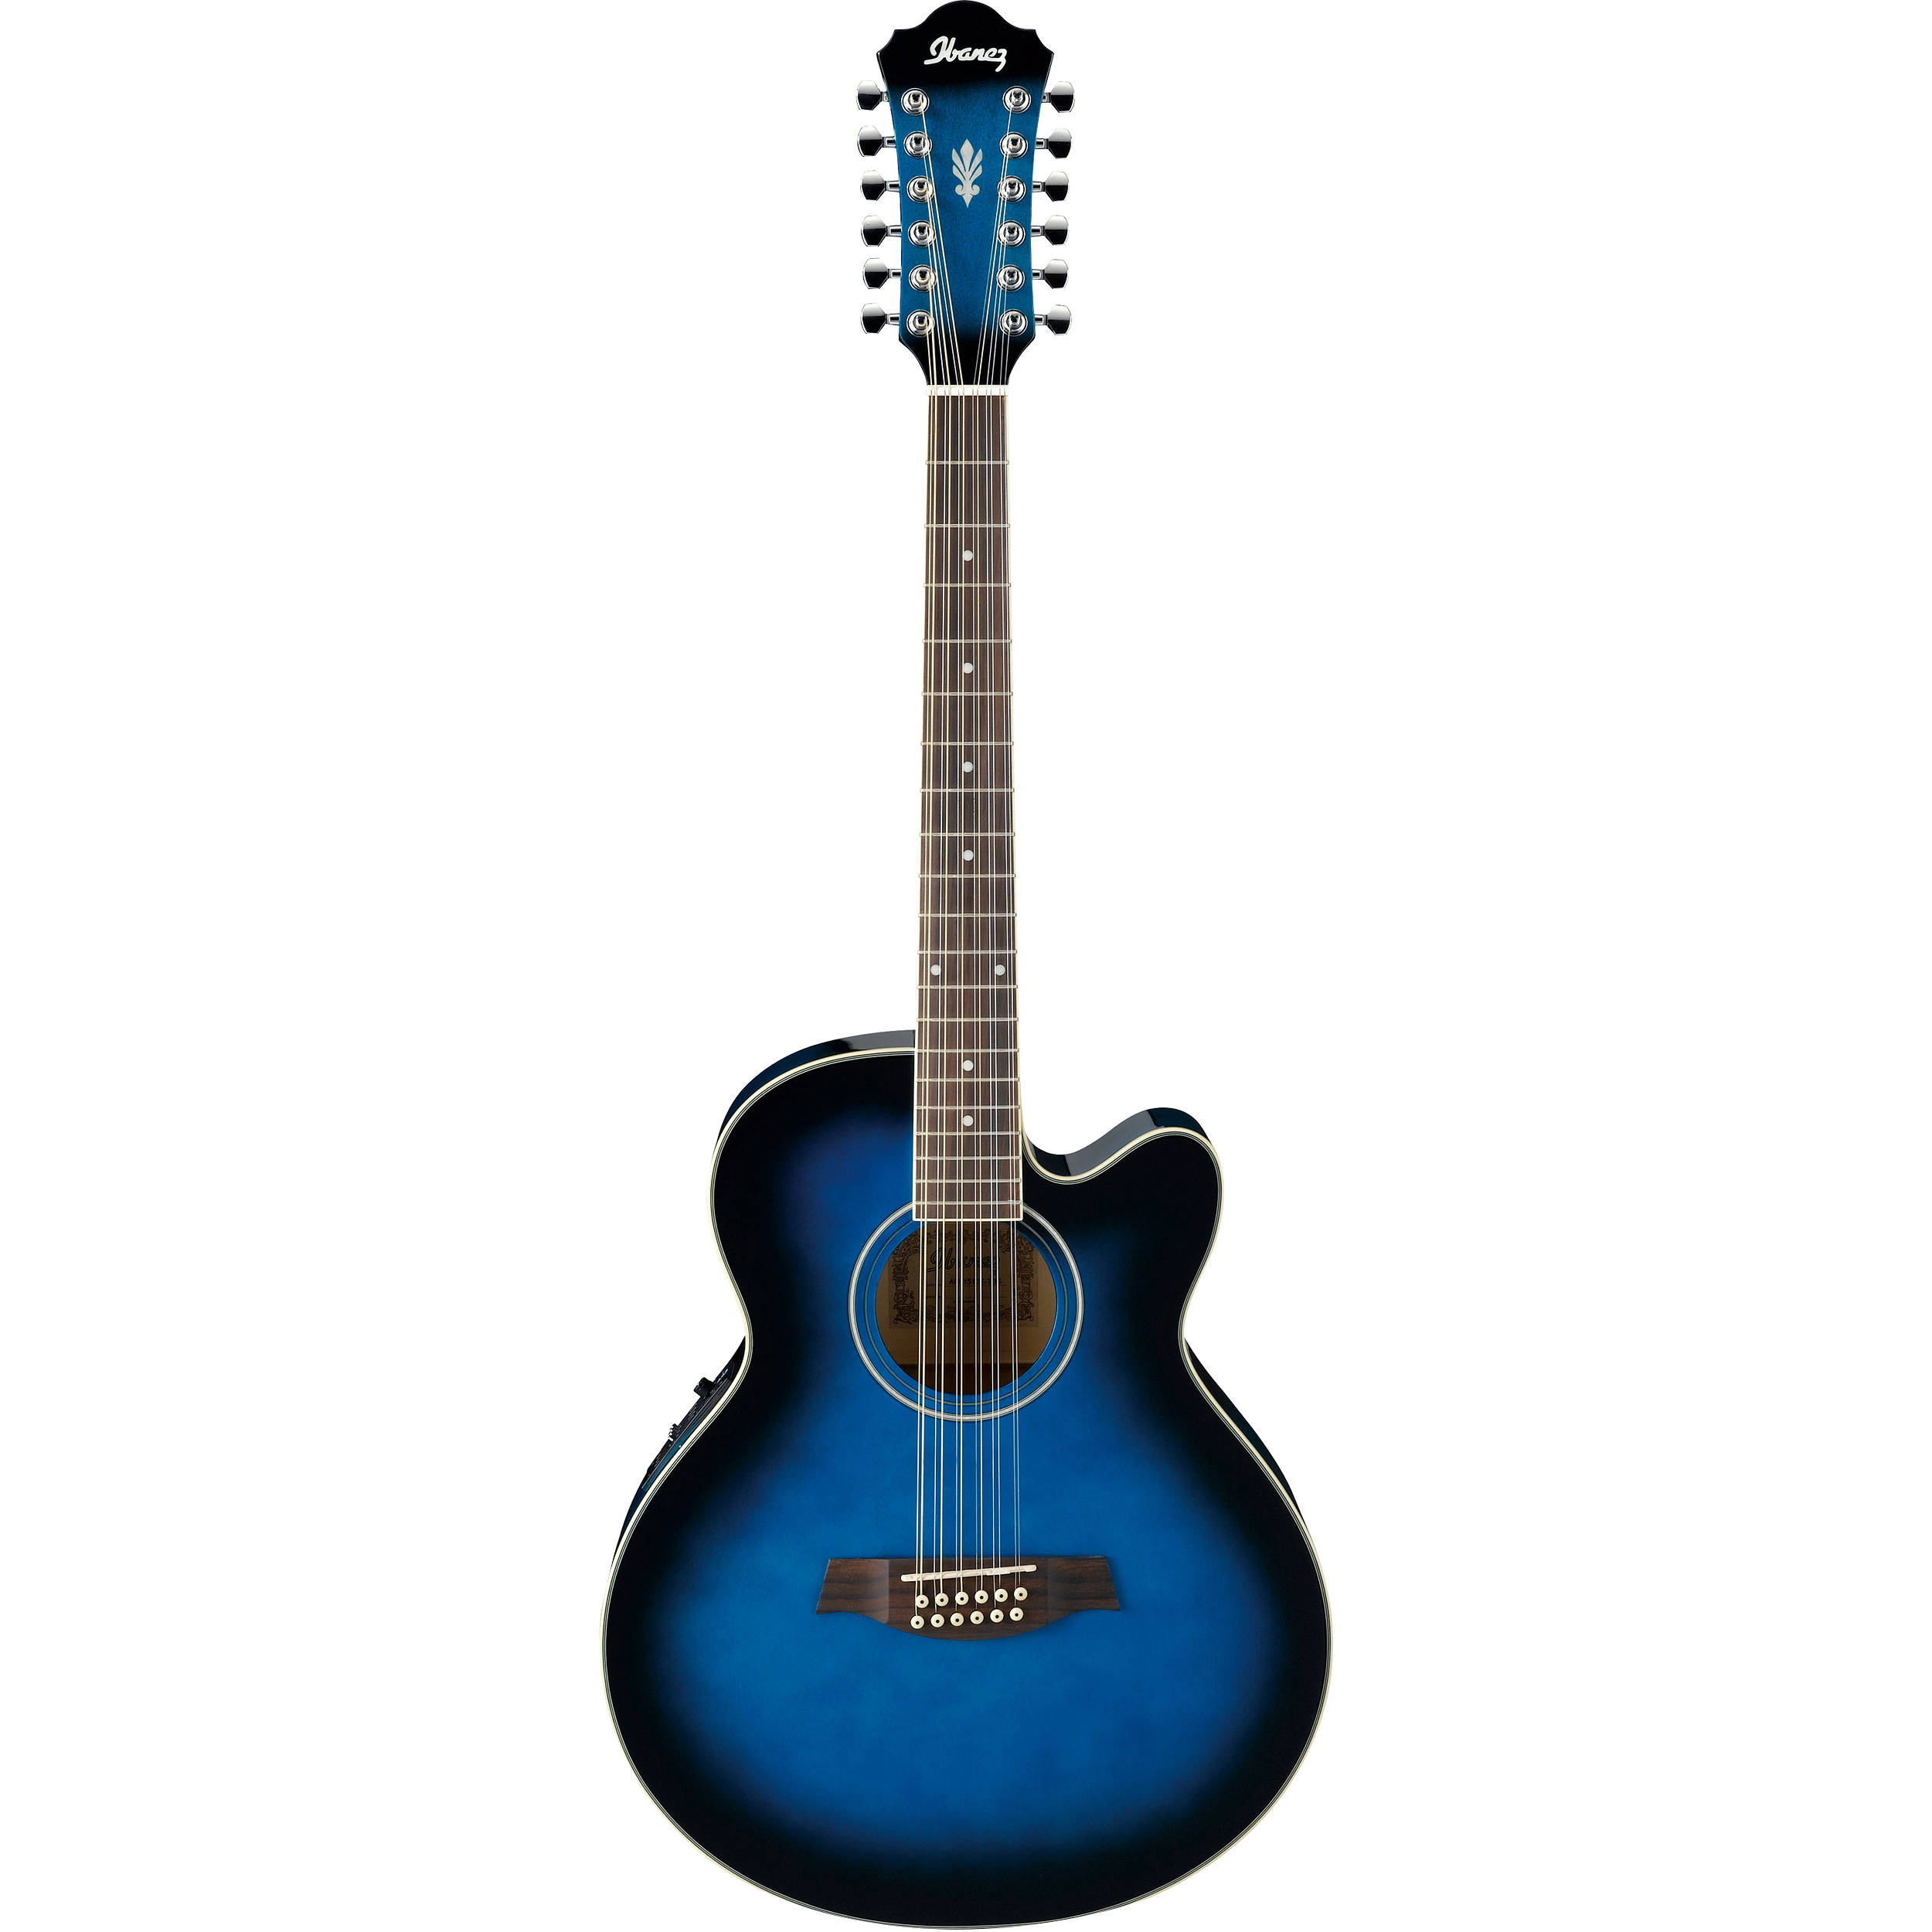 Ibanez AEL1512E Acoustic/Electric 12-String Guitar AEL1512ETBS